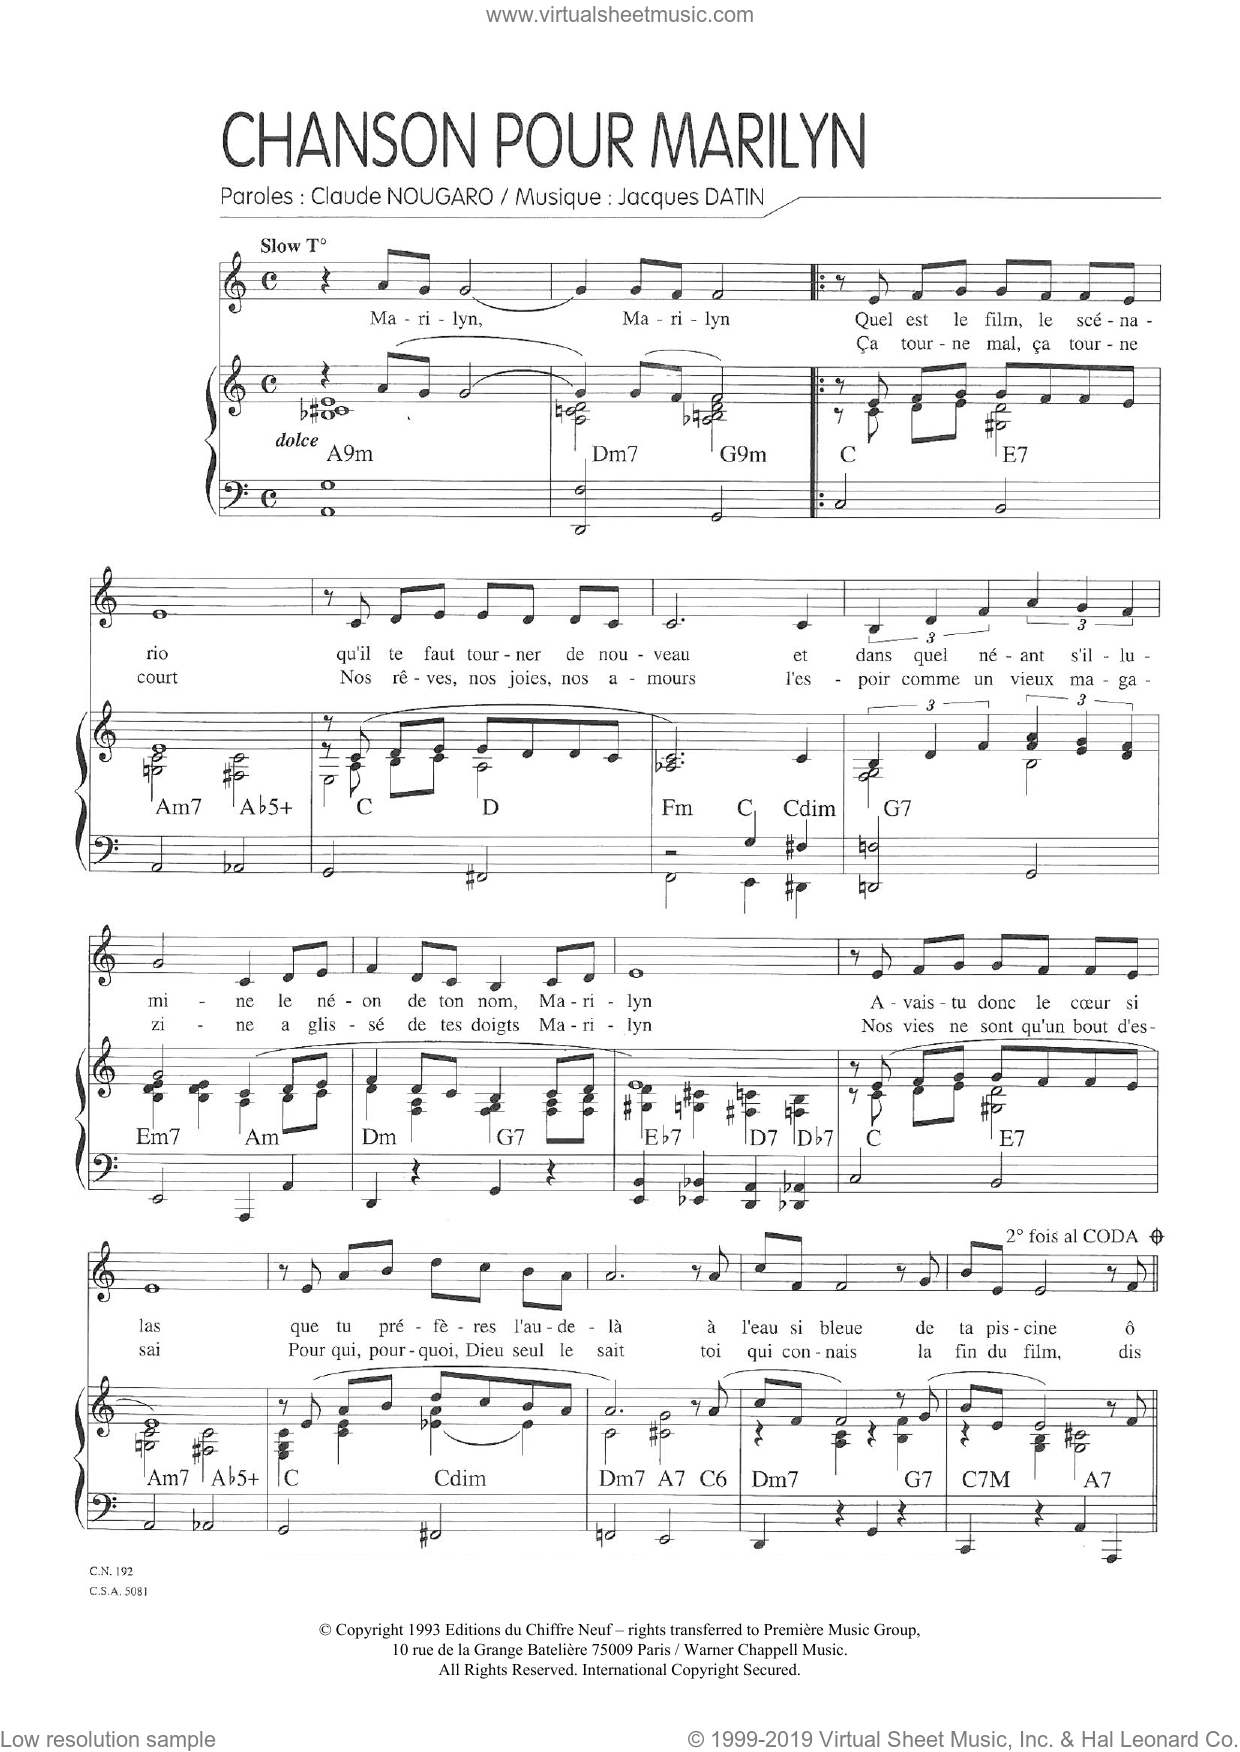 Chanson Pour Marilyn sheet music for voice and piano by Claude Nougaro and Jacques Datin, intermediate skill level